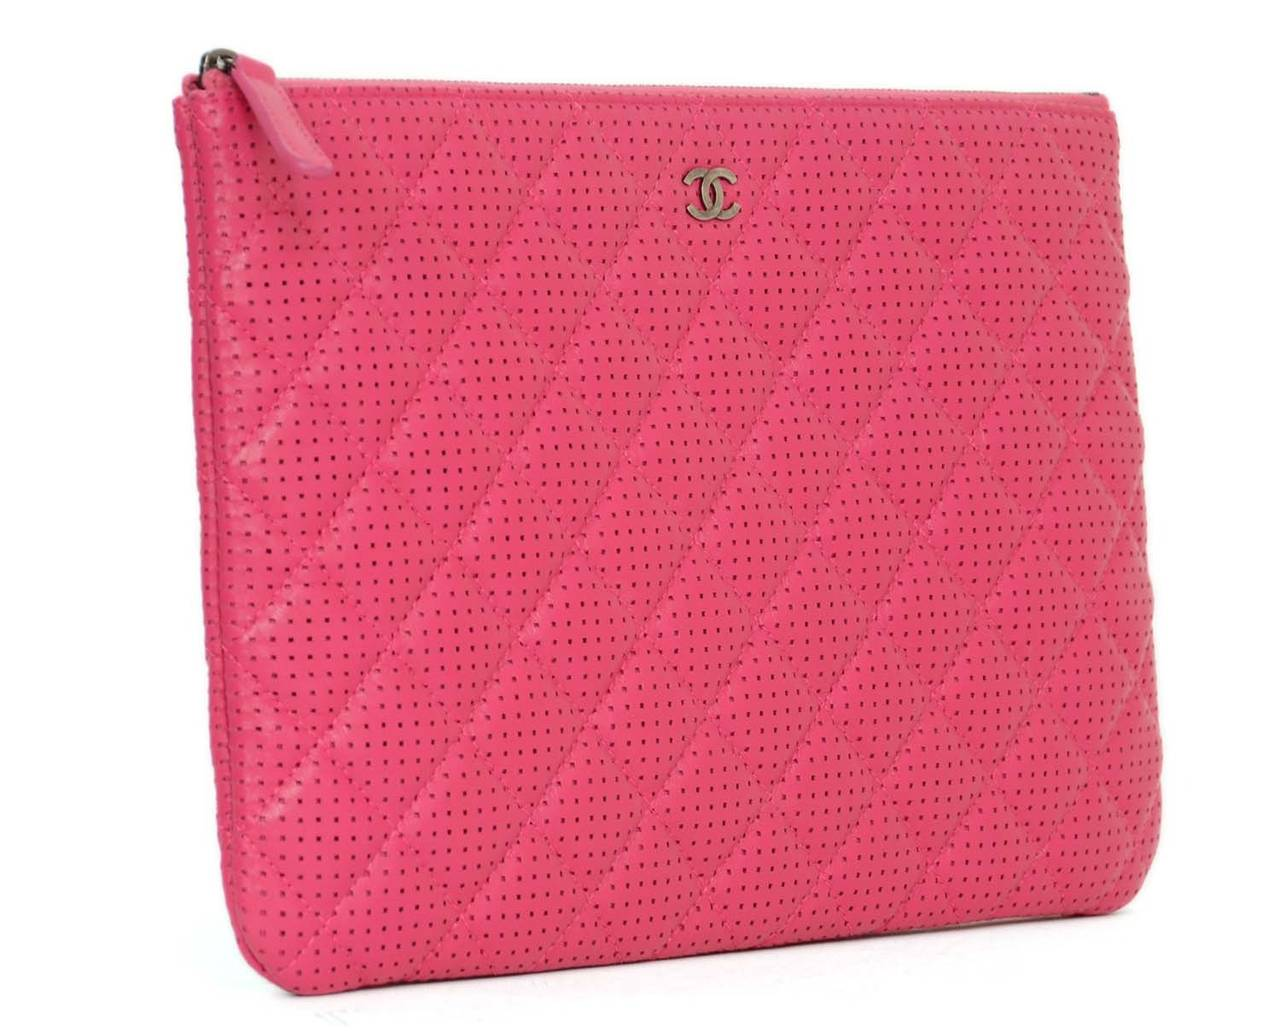 """5e371af5257836 CHANEL 2015 Hot Pink Perforated Lambskin """"O Case"""" Clutch Bag at  1stdibs"""